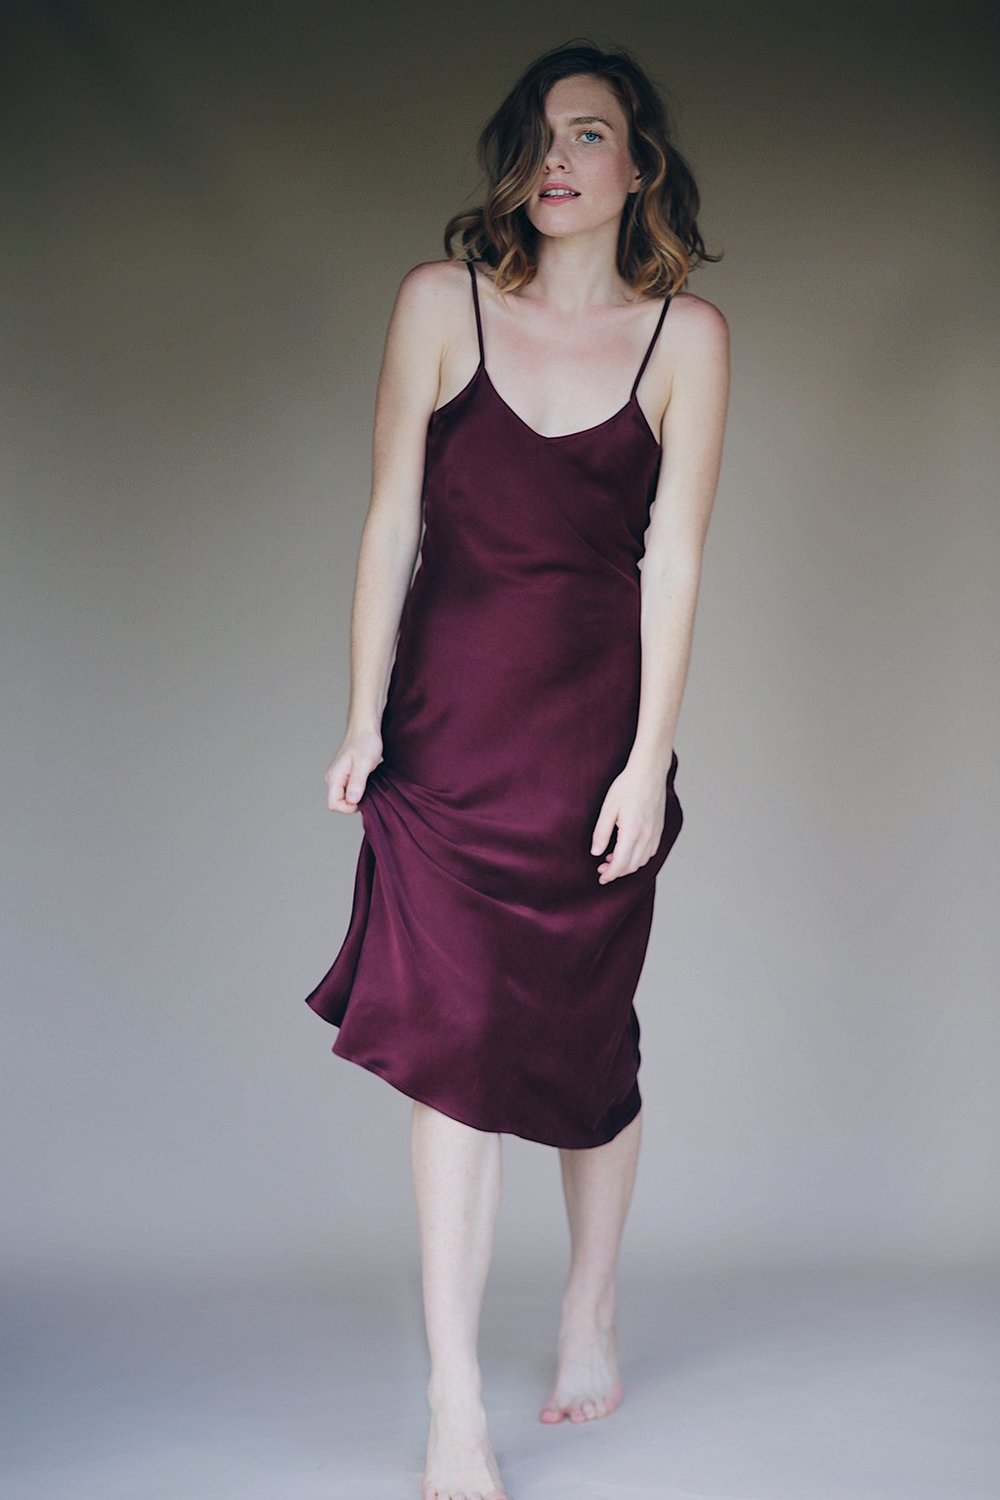 Silk Slip Dress in Bordeaux - You can never have too much of a good thing. This is a midi length dress with an easy fit and a slight v neckline.100% silk • Adjustable straps • Midi length • Slight V Neck • Open upper back • Strapless bra friendly • Bias cut • Easy fit